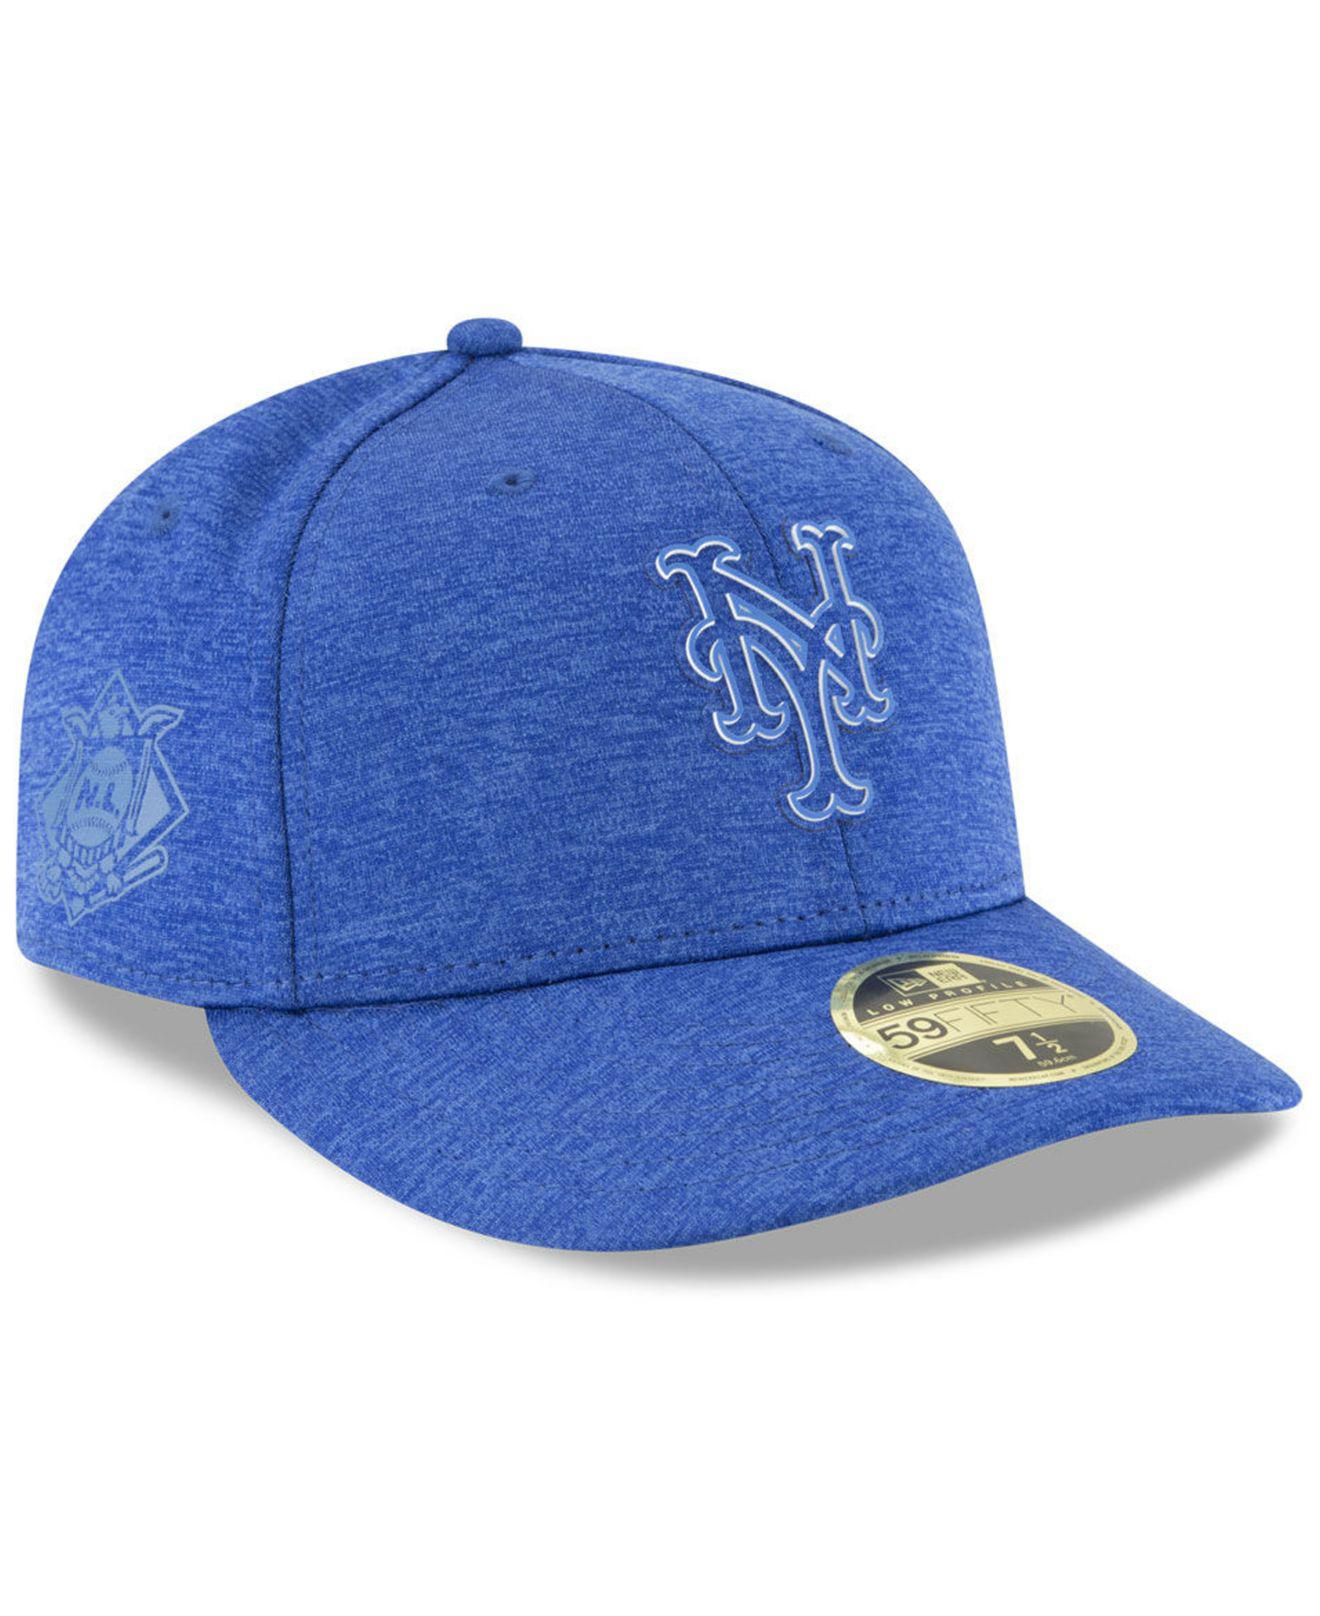 15a4b3a59ab Lyst - KTZ New York Mets Clubhouse Low Crown 59fifty Fitted Cap in ...